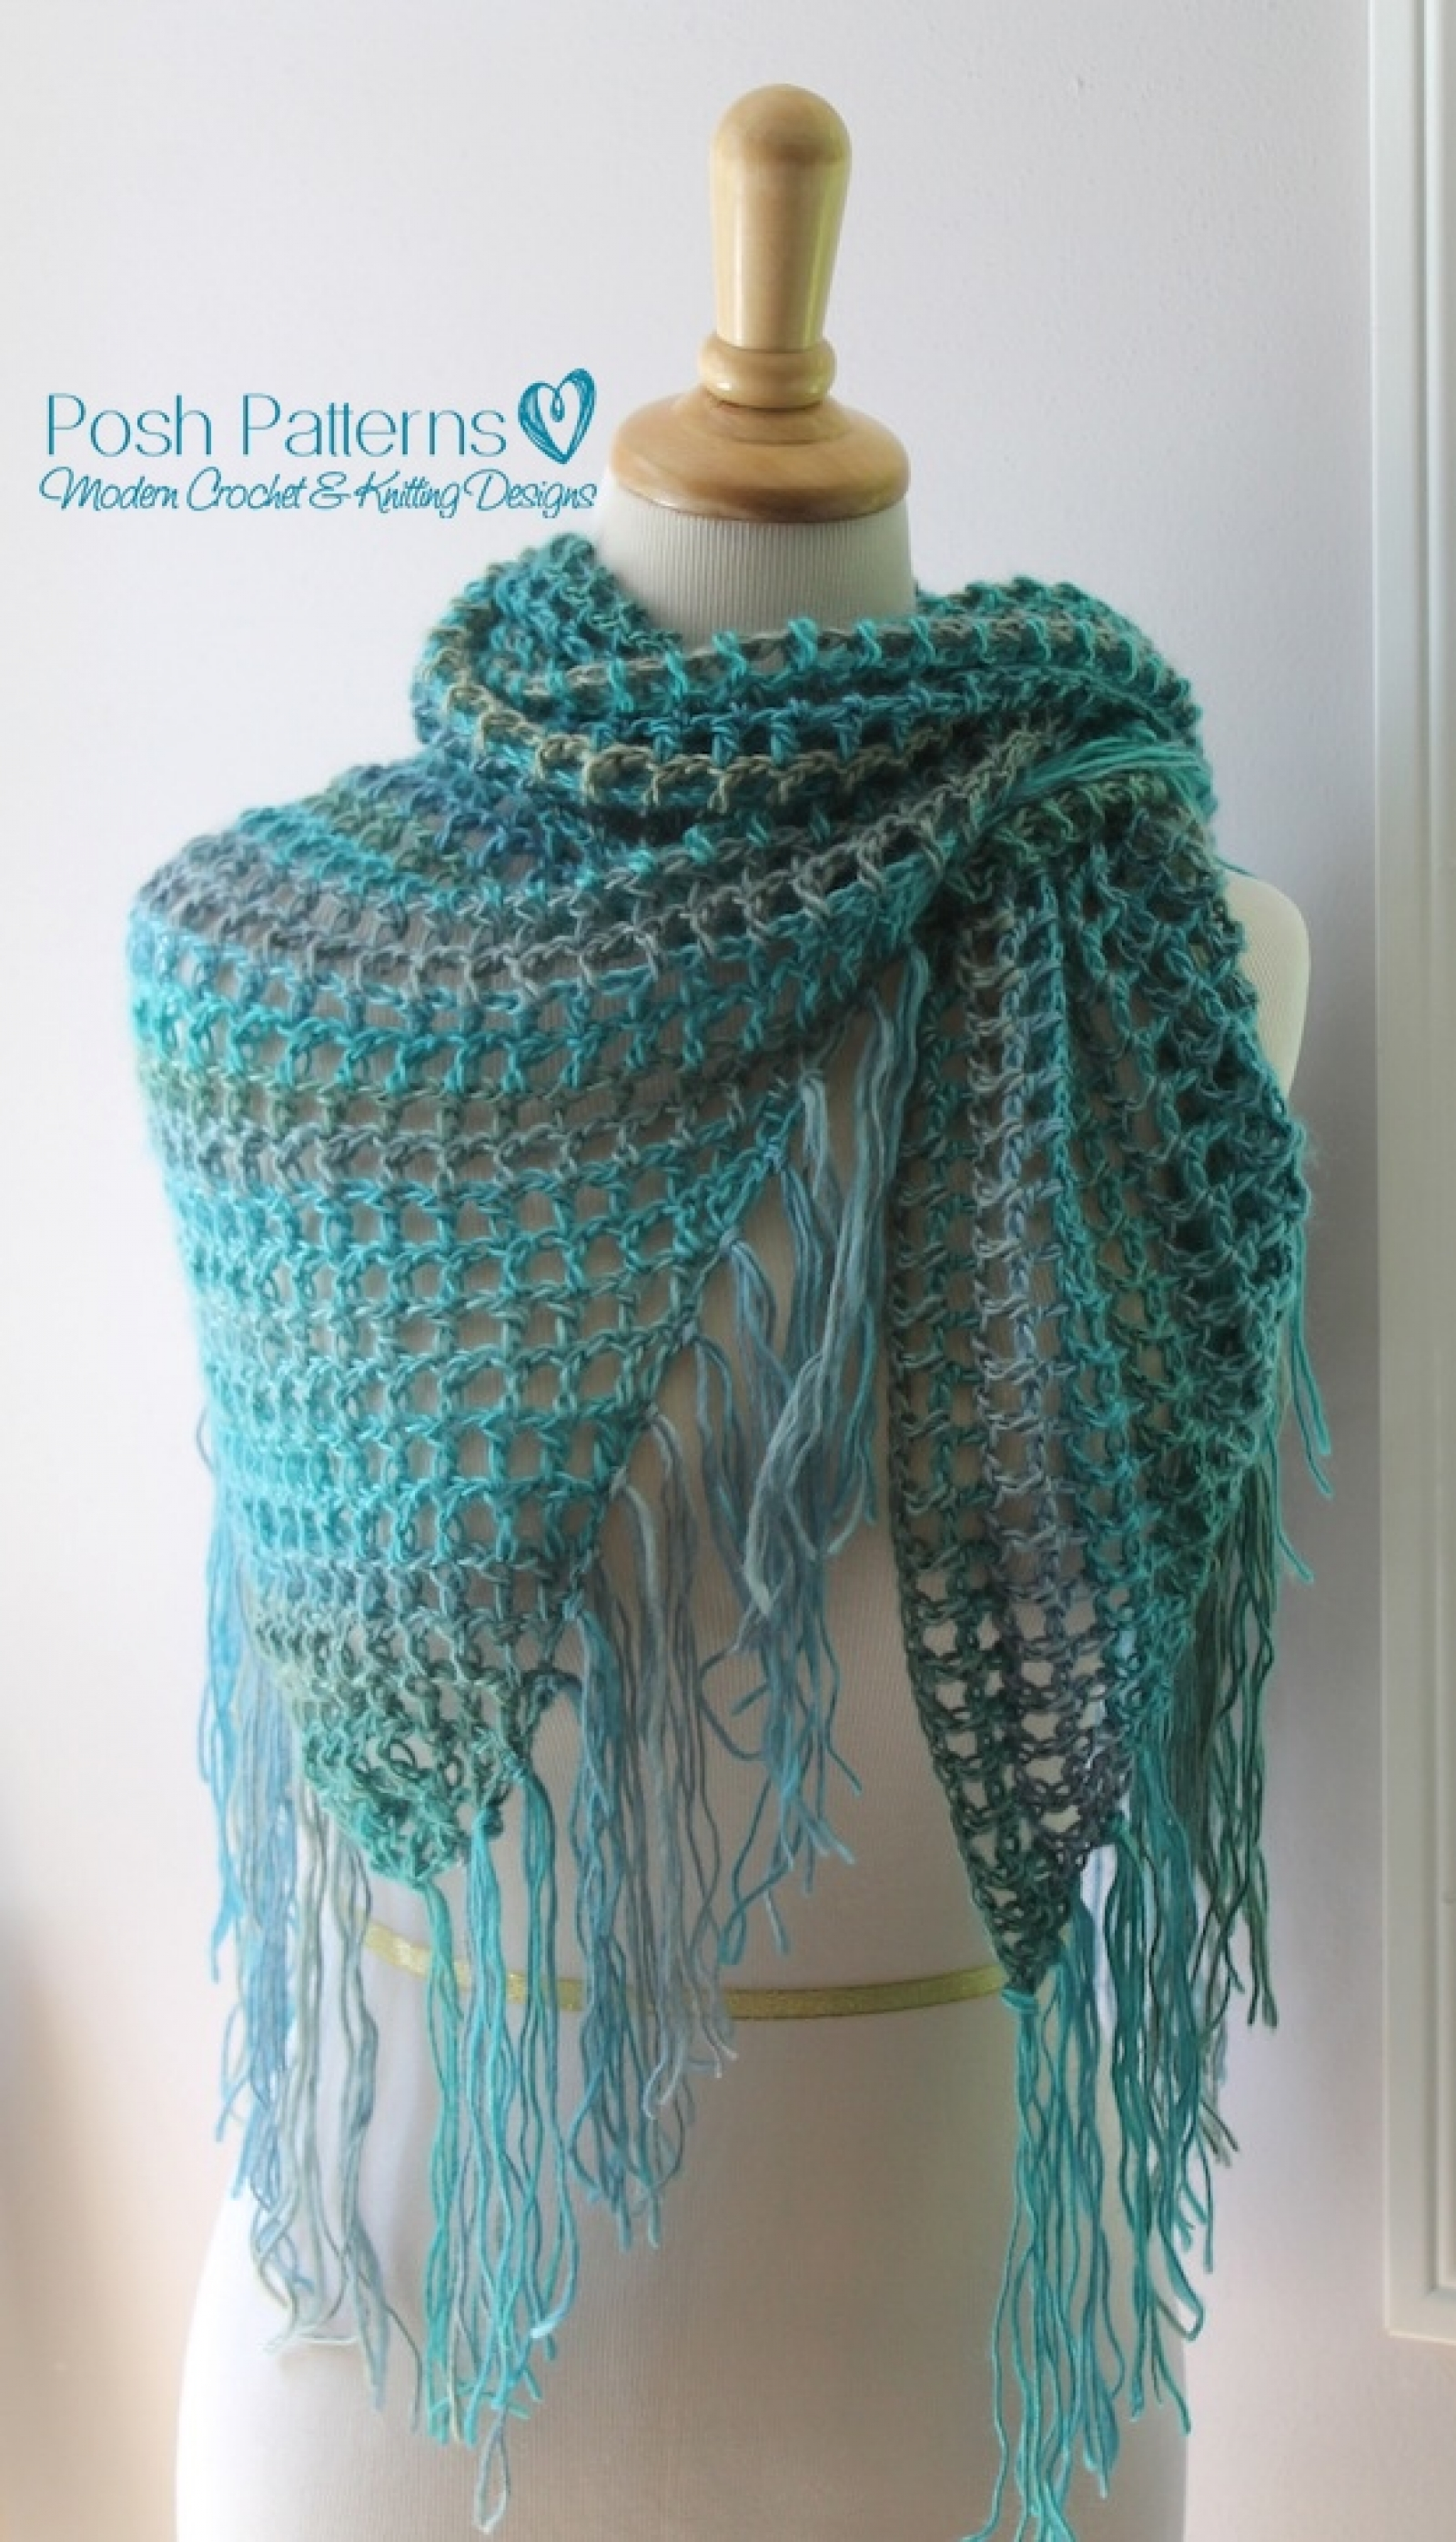 Crochet Shawl Directions